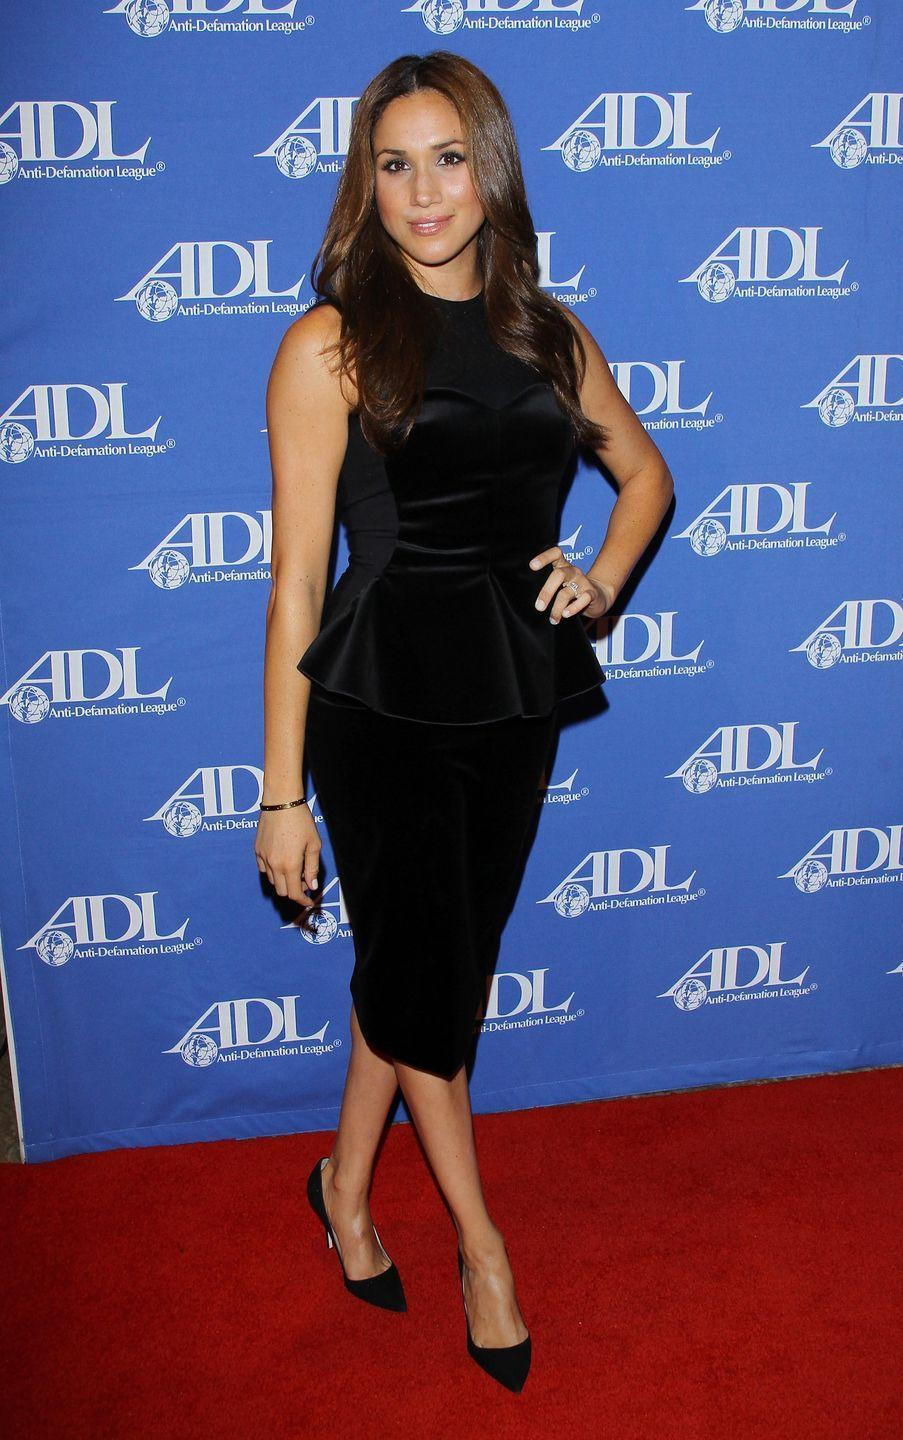 <p>Anti-Defamation League Entertainment Industry Awards dinner, in October 2011</p>